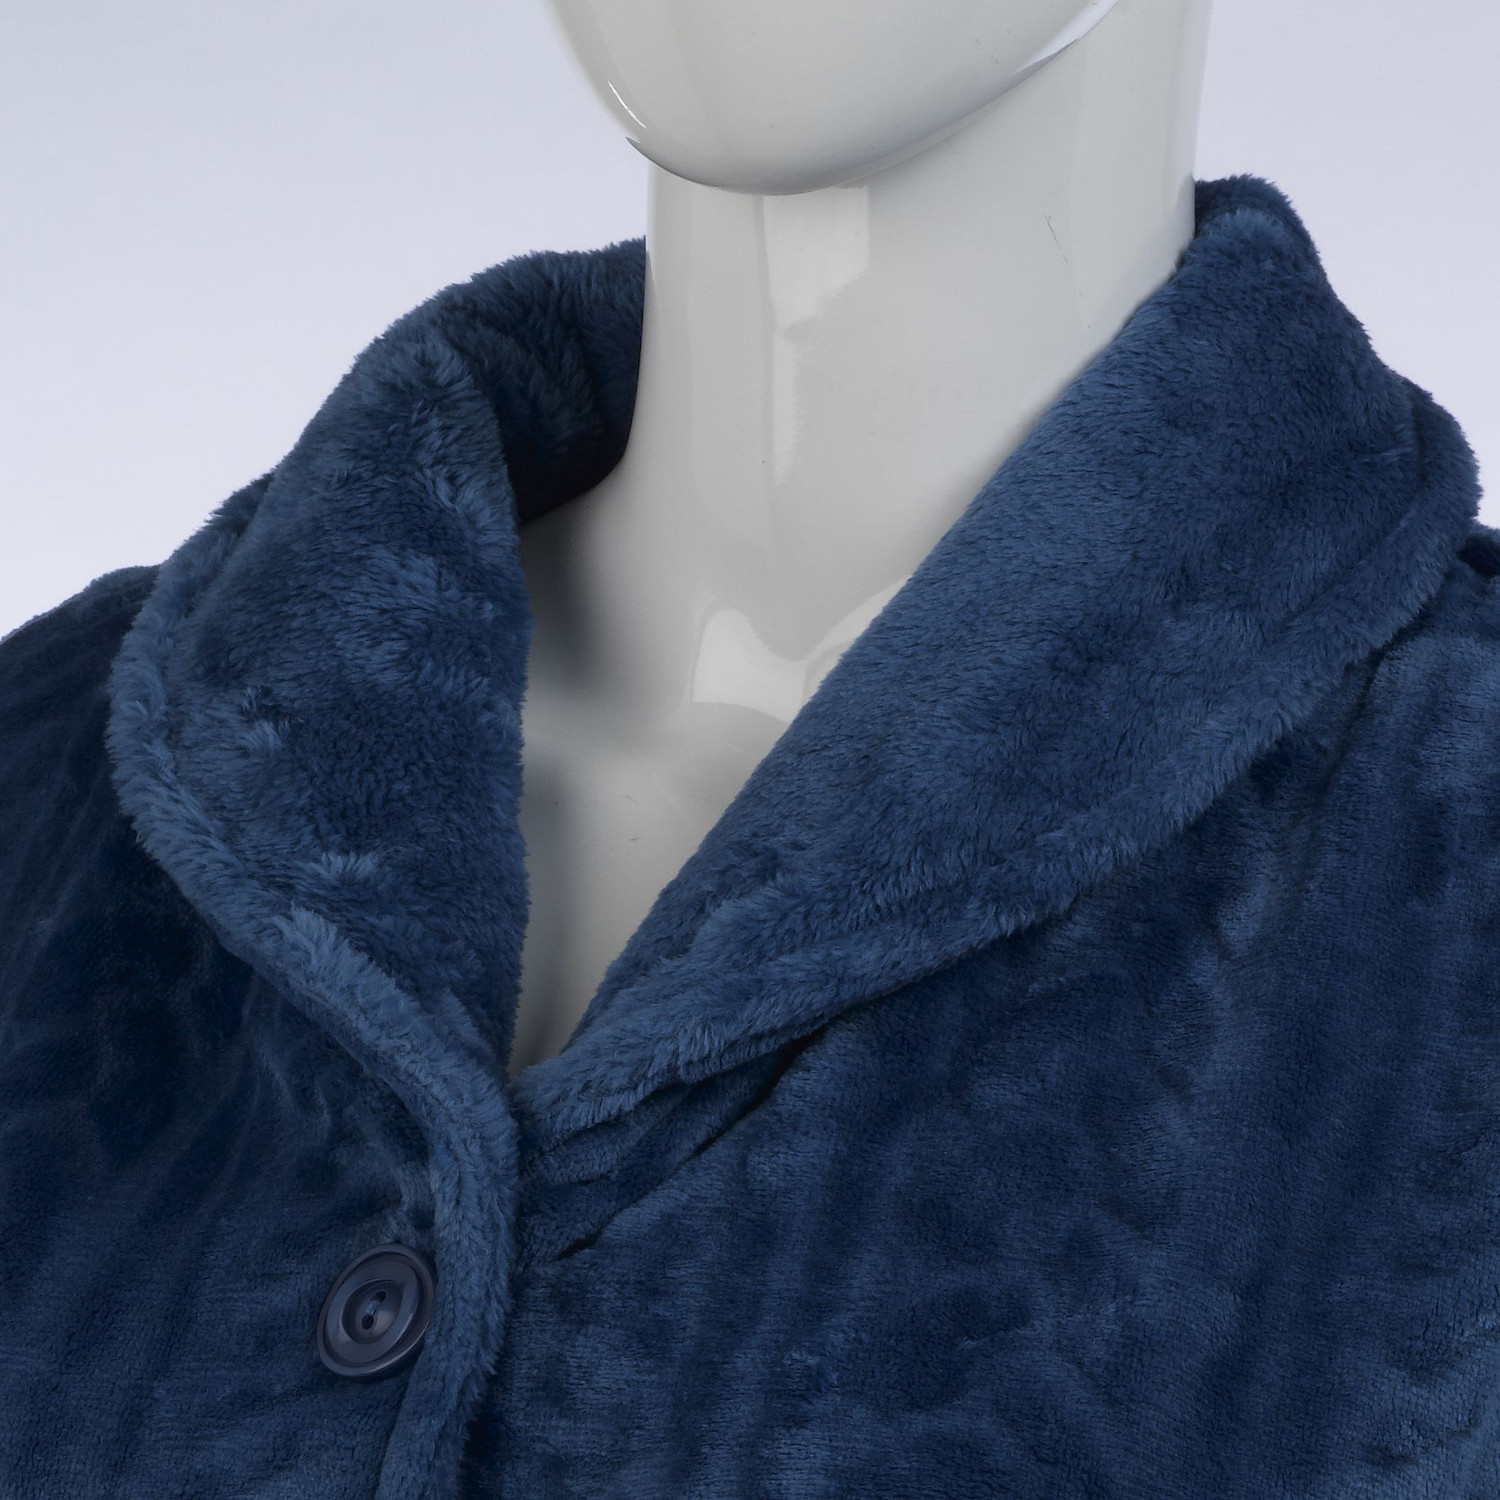 Slenderella Ladies Soft Fleece Button Up Bed Jacket Cable Style Housecoat Pocket